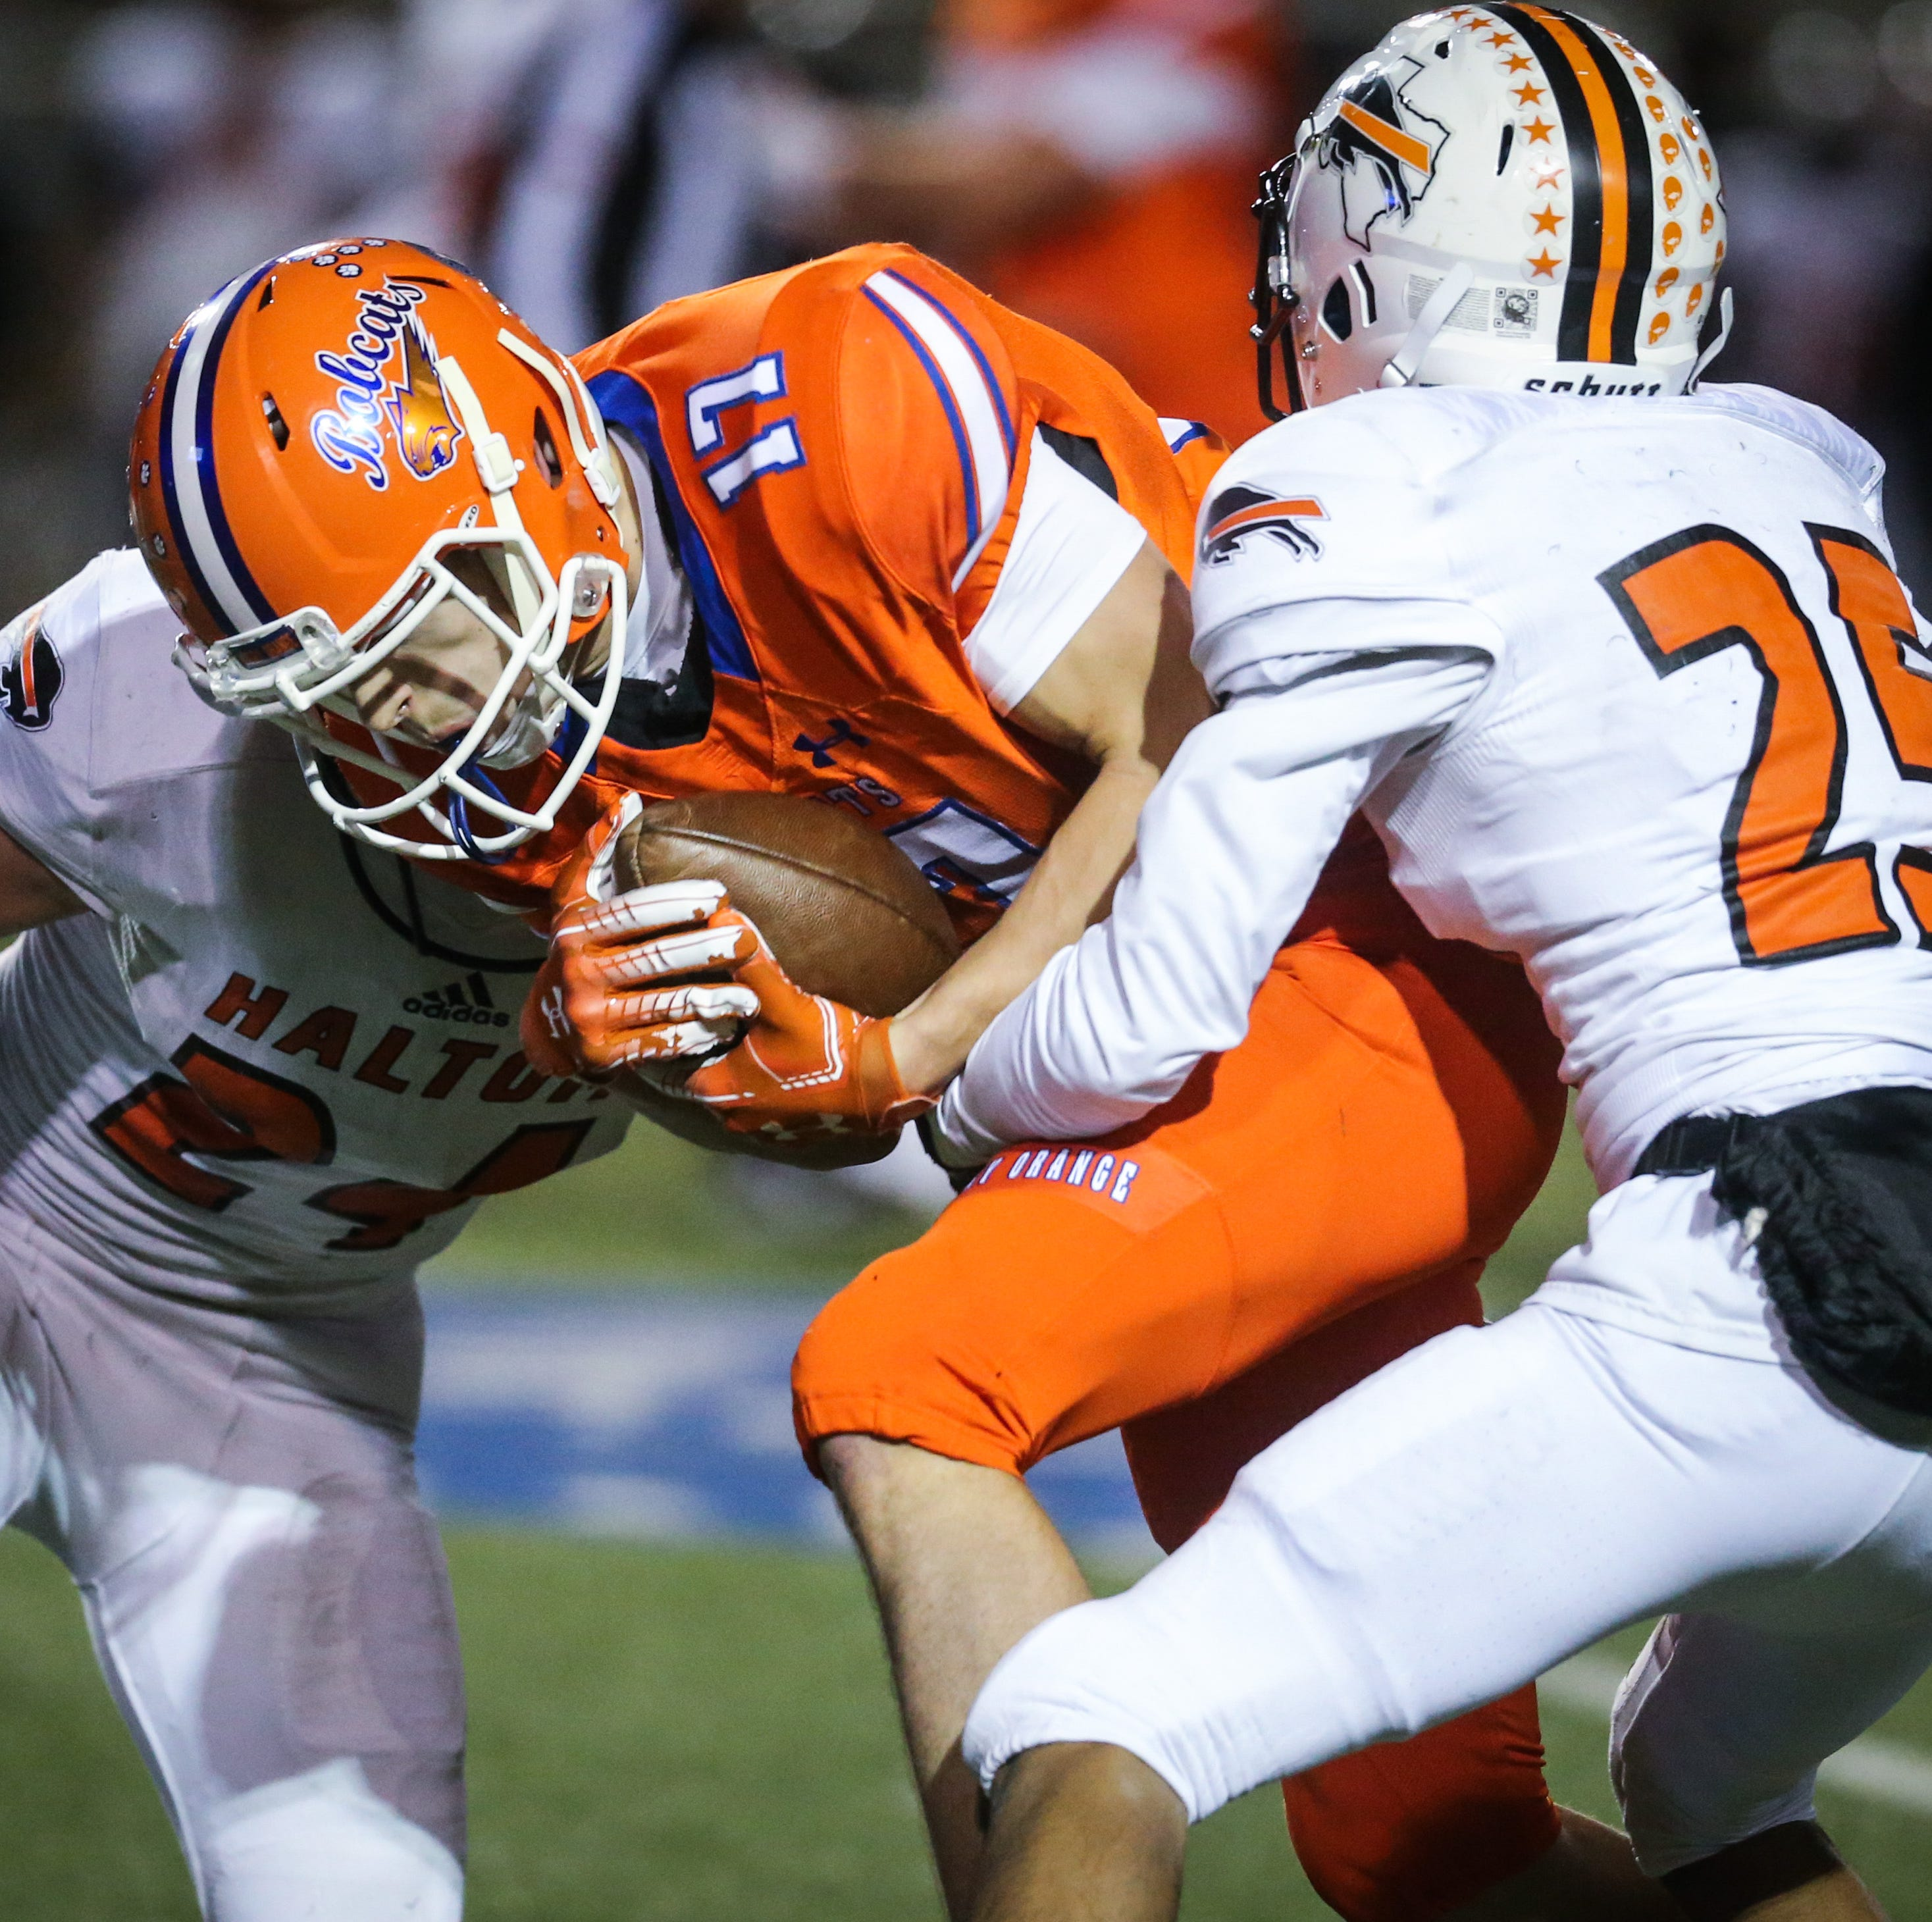 San Angelo Central's comeback falls short against Fort Worth Haltom